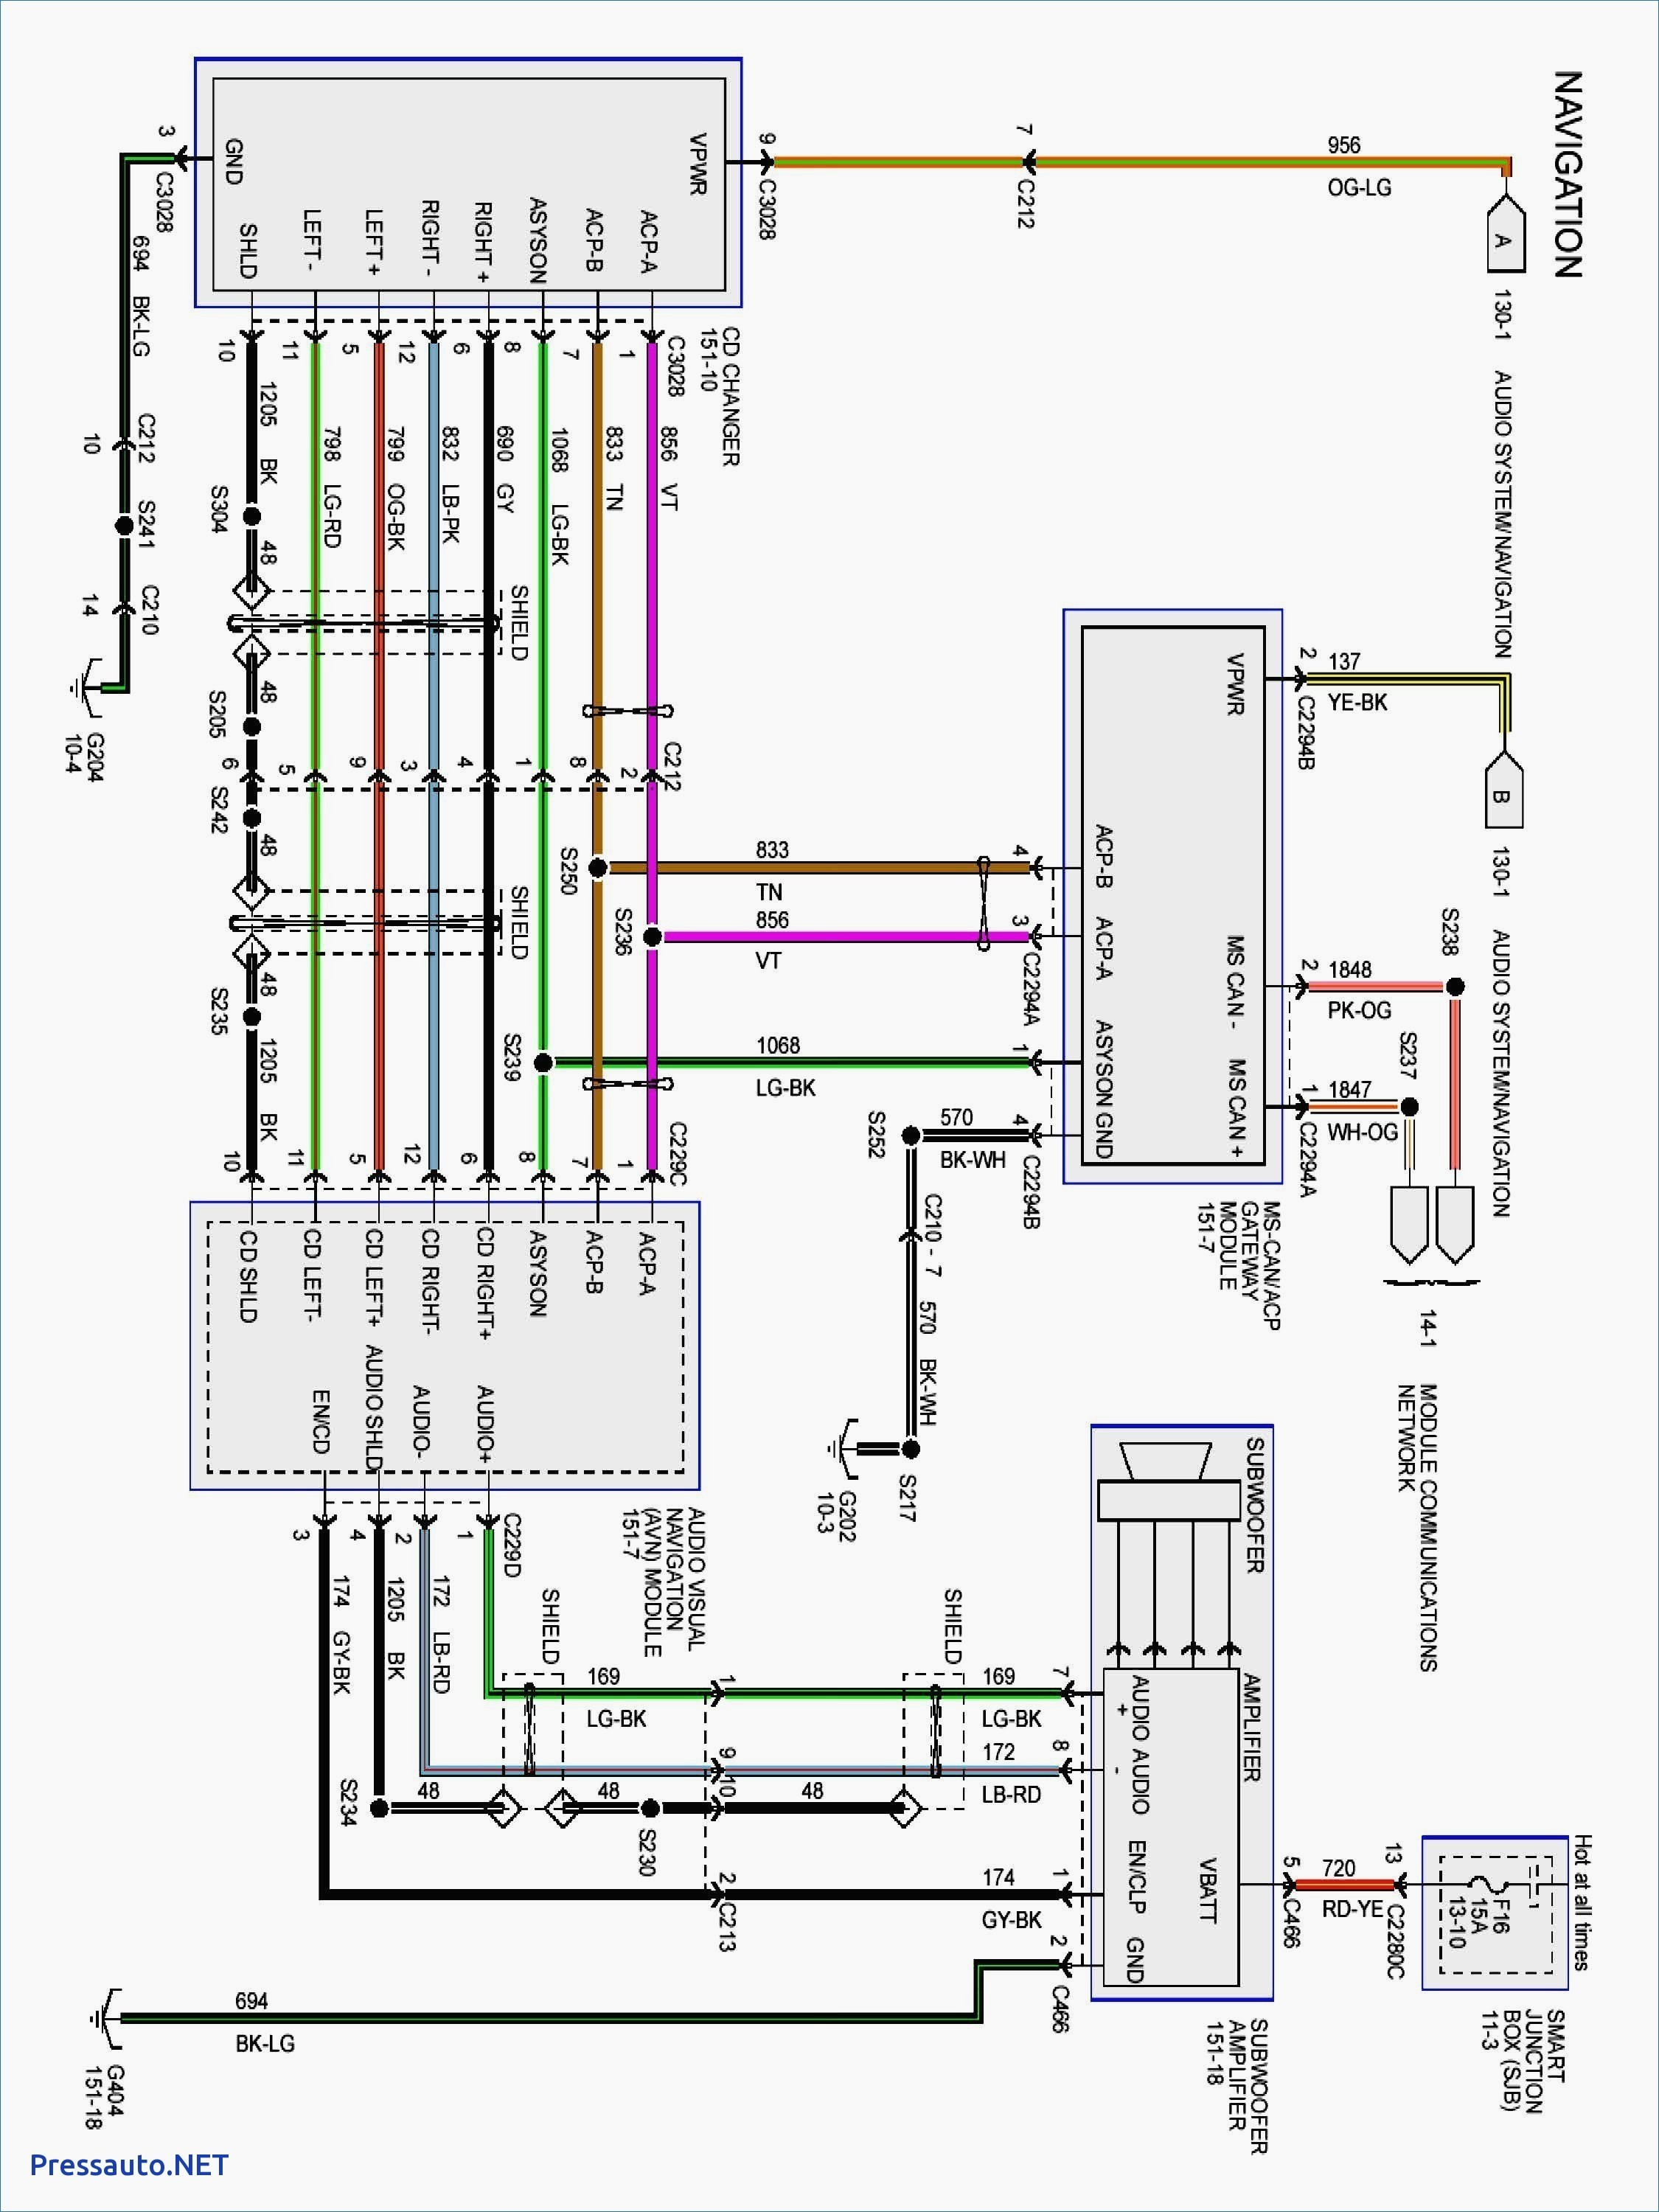 Wiring Diagram Jvc Car Stereo from mainetreasurechest.com